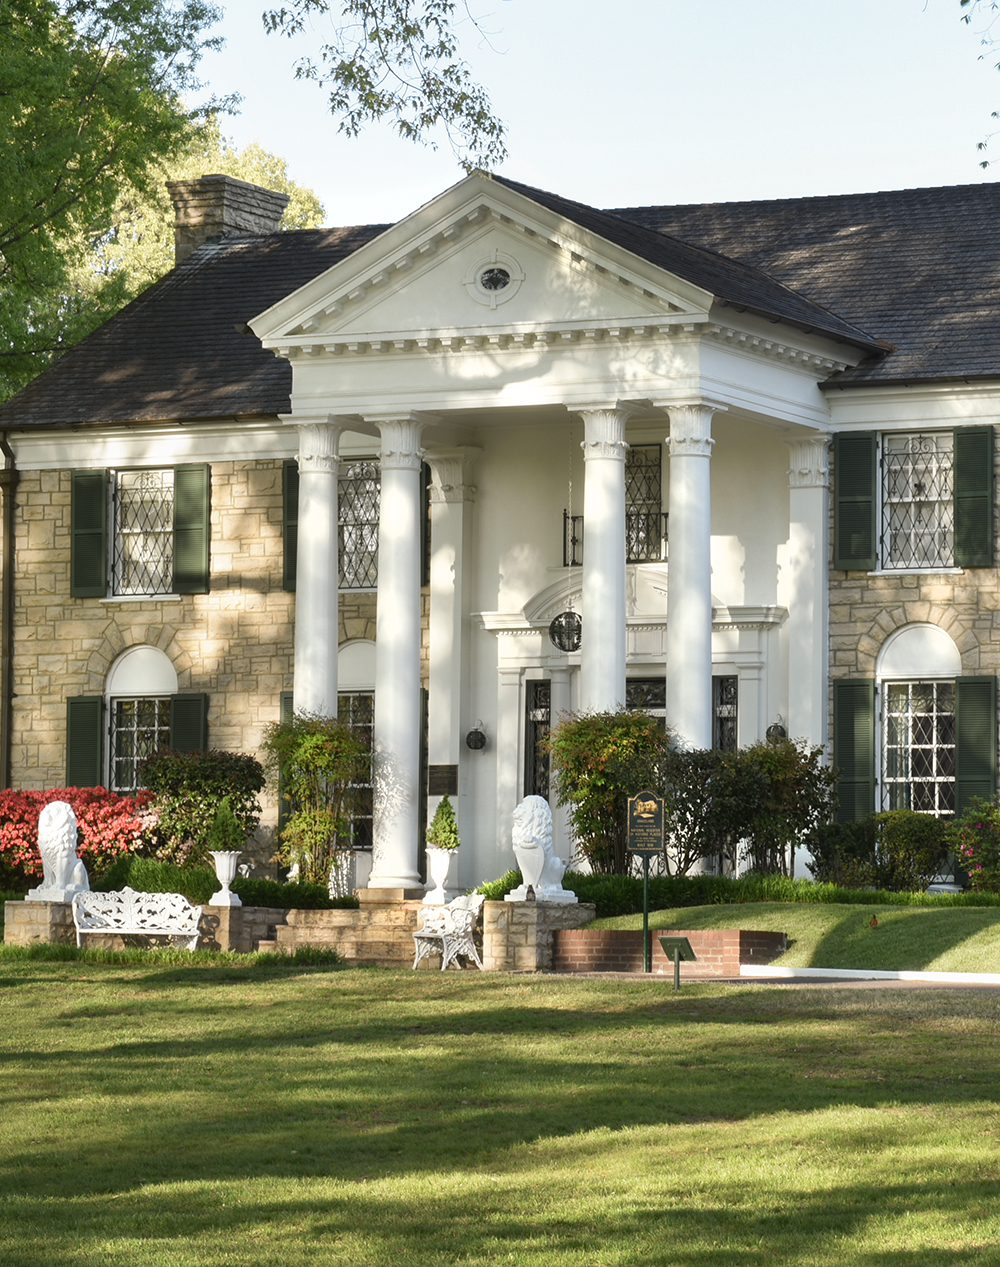 Graceland in Memphis, TN